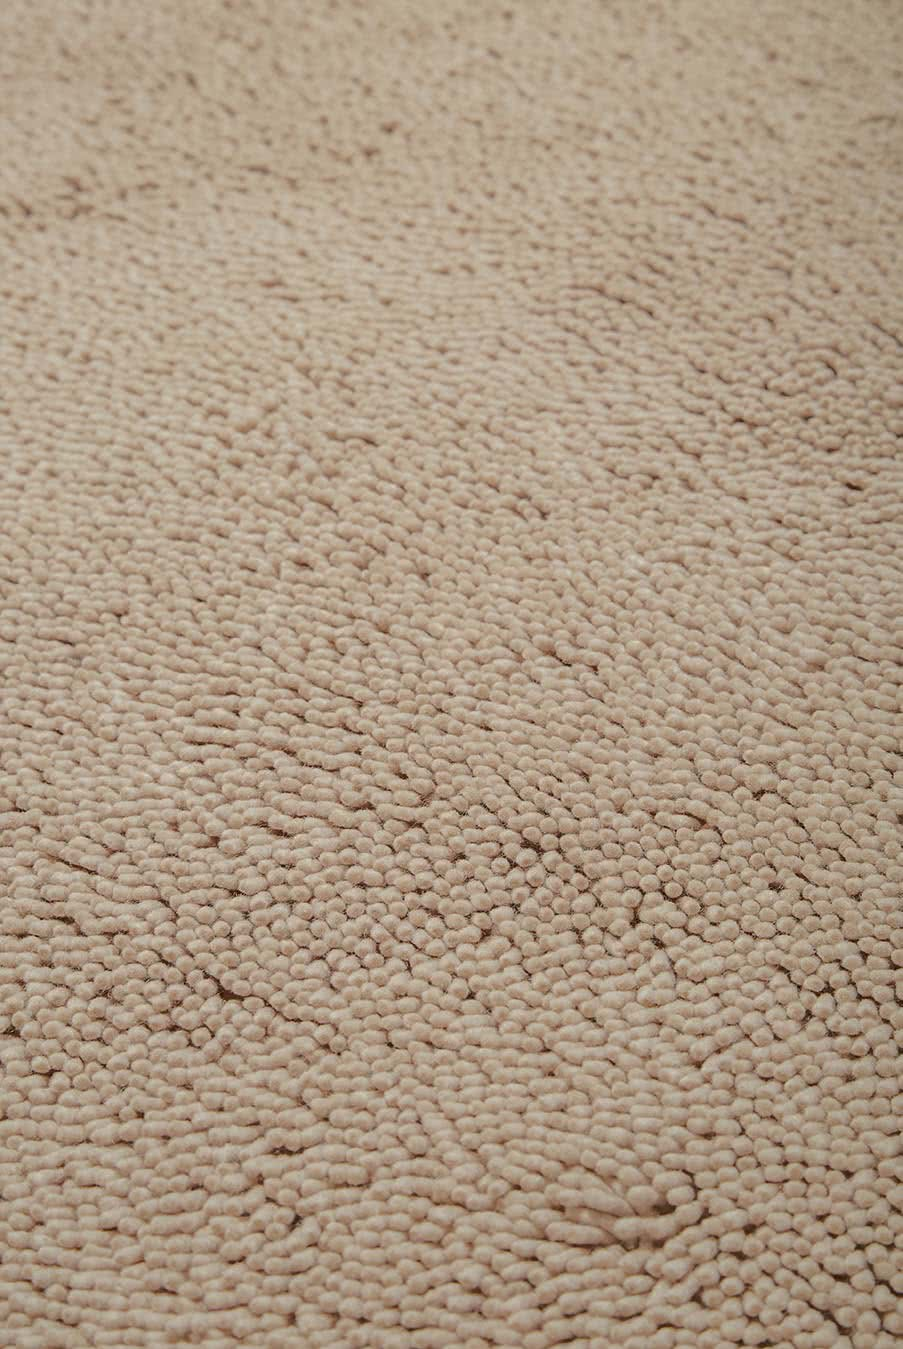 Close up view of textured Napoleon Shag rug in beige colour